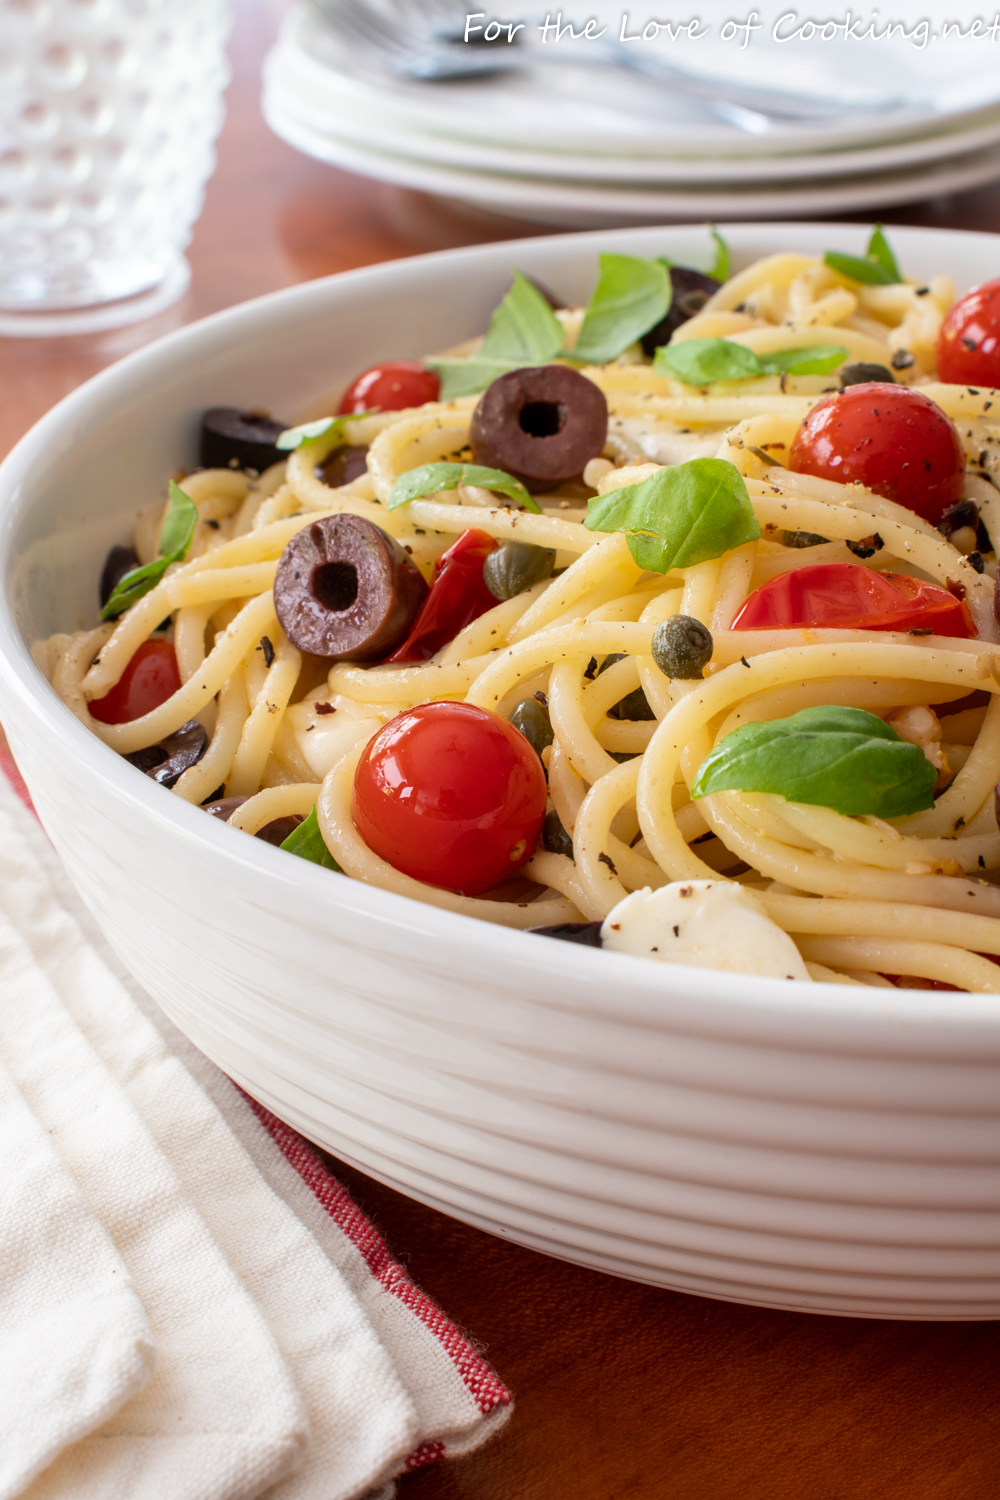 Spaghetti with Cherry Tomatoes, Olives, and Capers